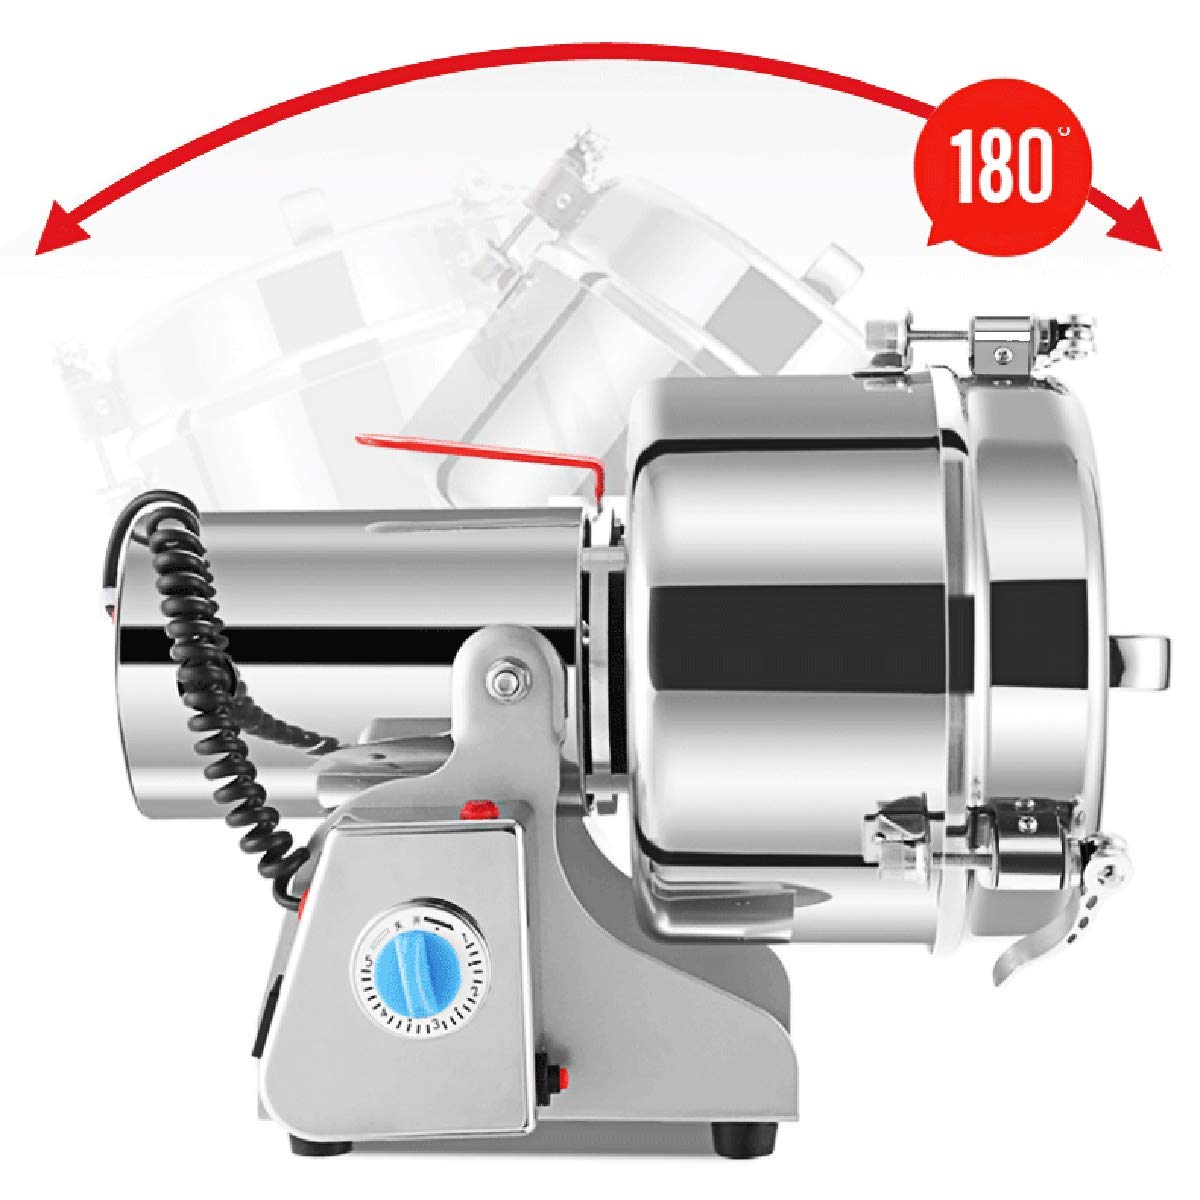 RRH 1000G Swing Type Grain Mill Electric Spice Nut and Coffee Grinder High Speed 25000 RPM Stainless Steel 2800W Powder Machine 50-300 Mesh, for Herbs Corn Sesame Soybean Pepper Bait Feed by RRH (Image #6)